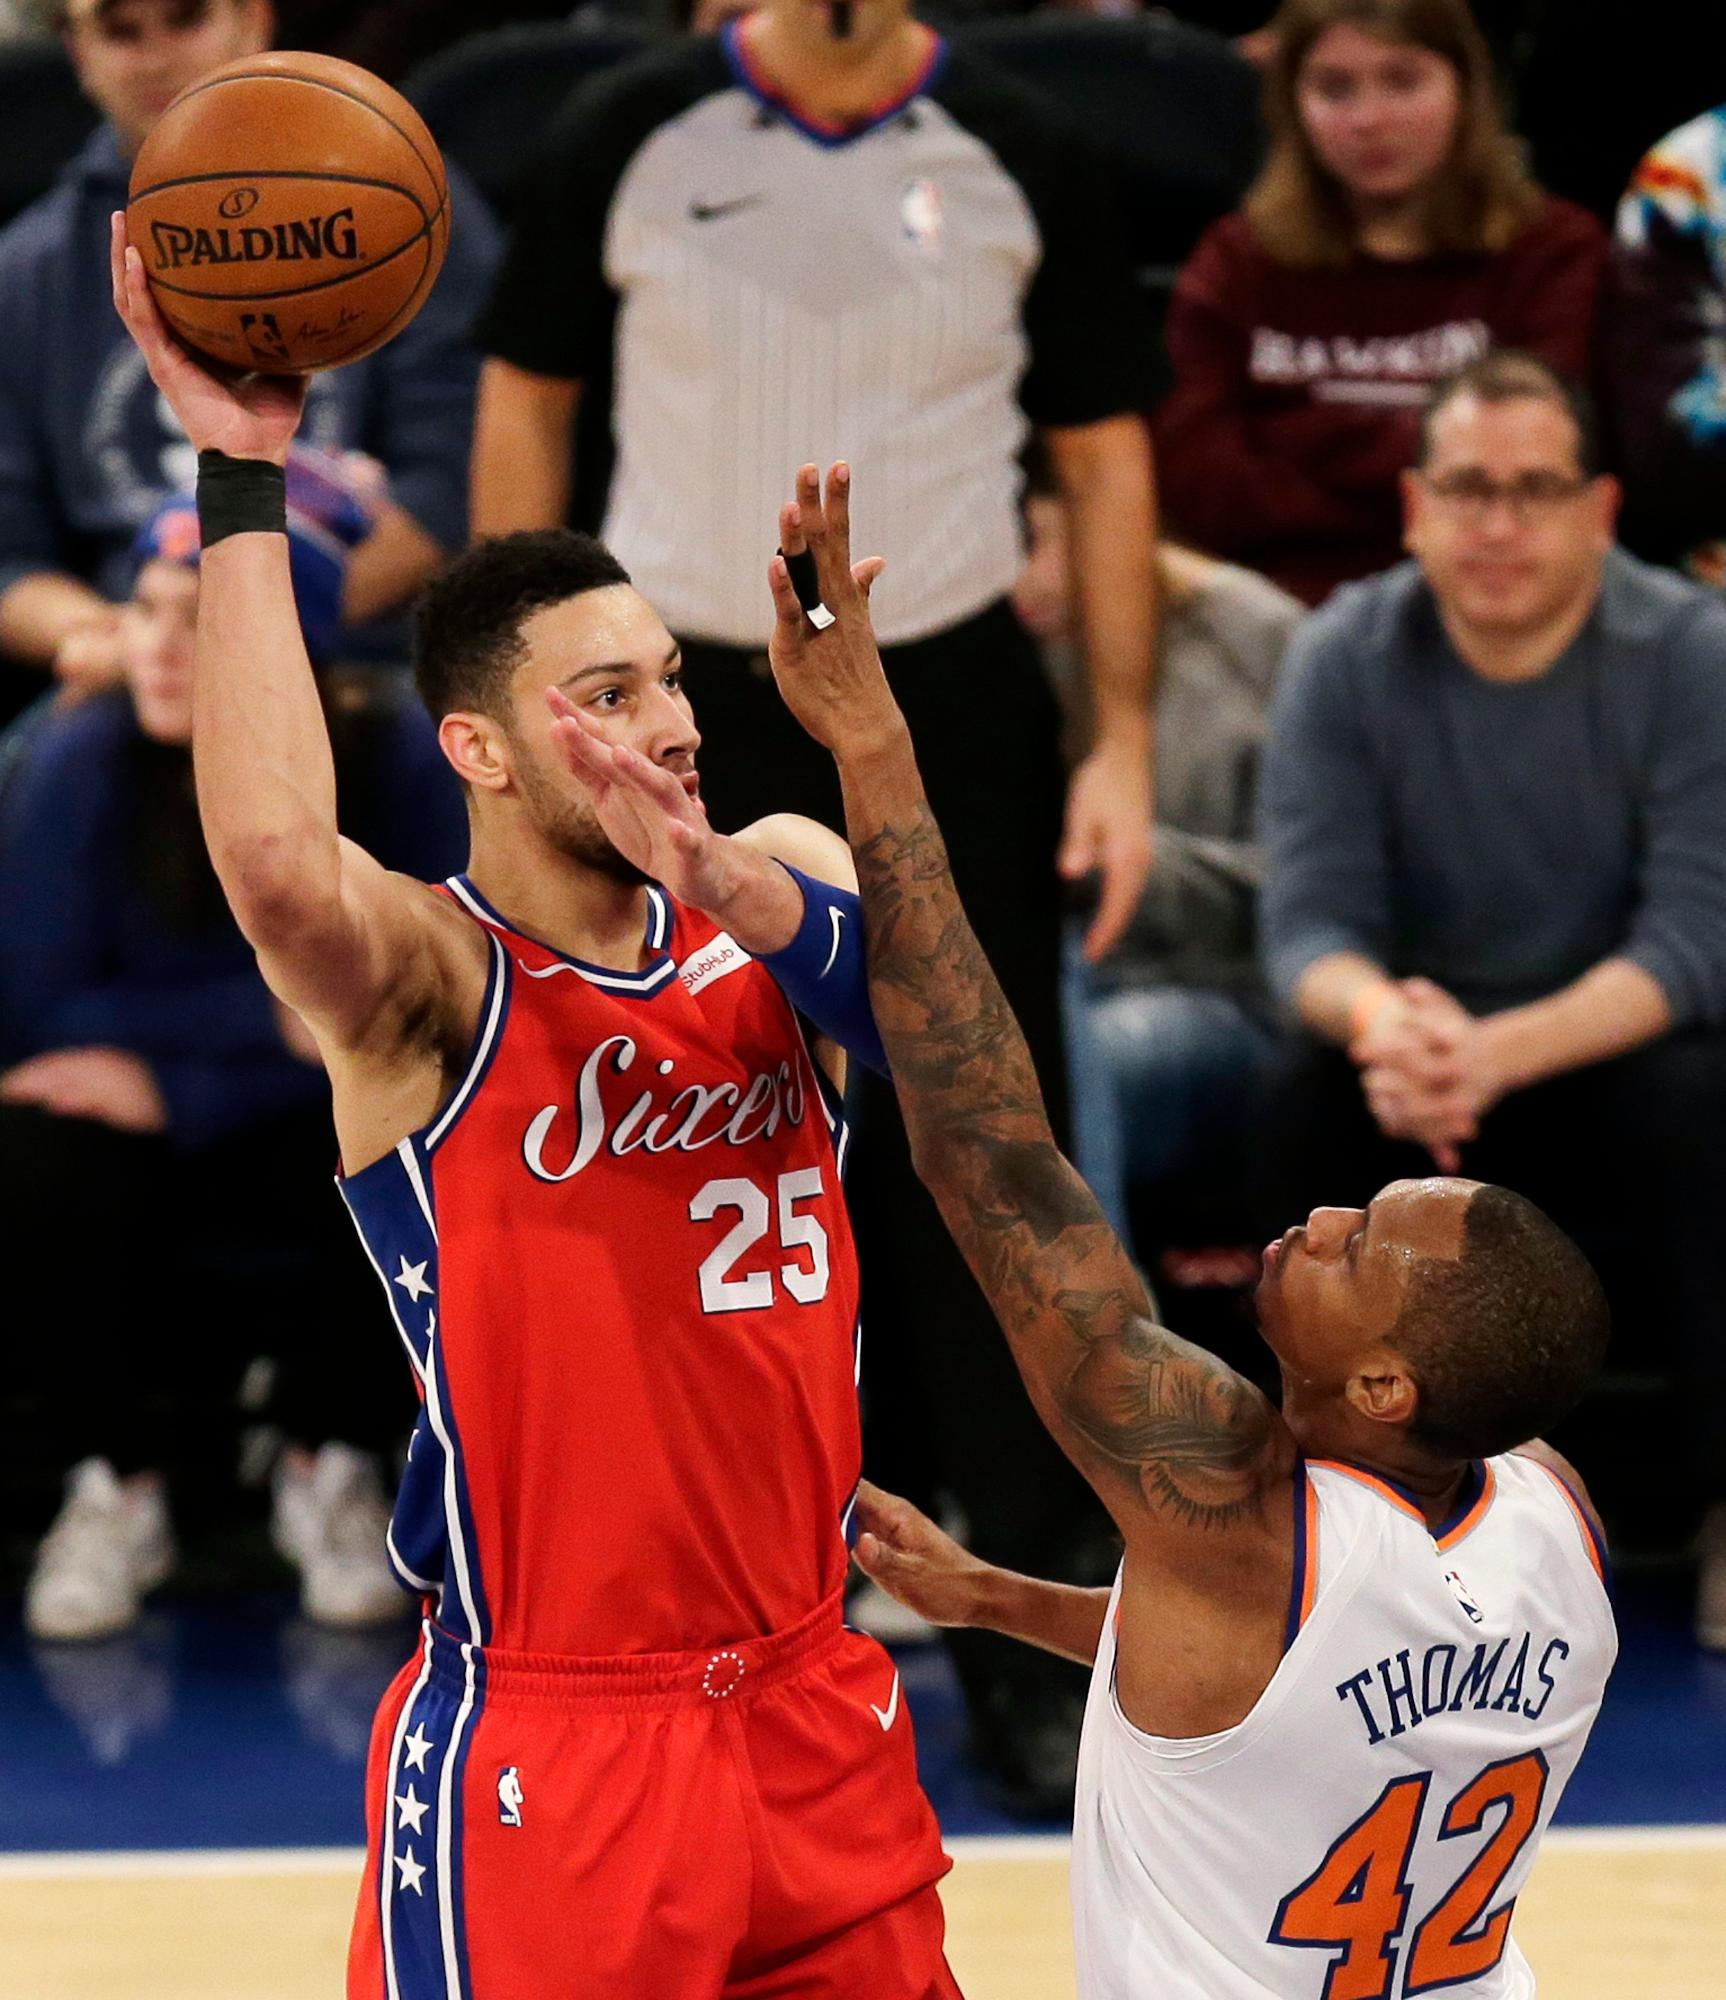 Philadelphia 76ers' Ben Simmons, left, shoots over New York Knicks' Lance Thomas during the first half of the NBA basketball game, Monday, Dec. 25, 2017, in New York. (AP Photo/Seth Wenig)